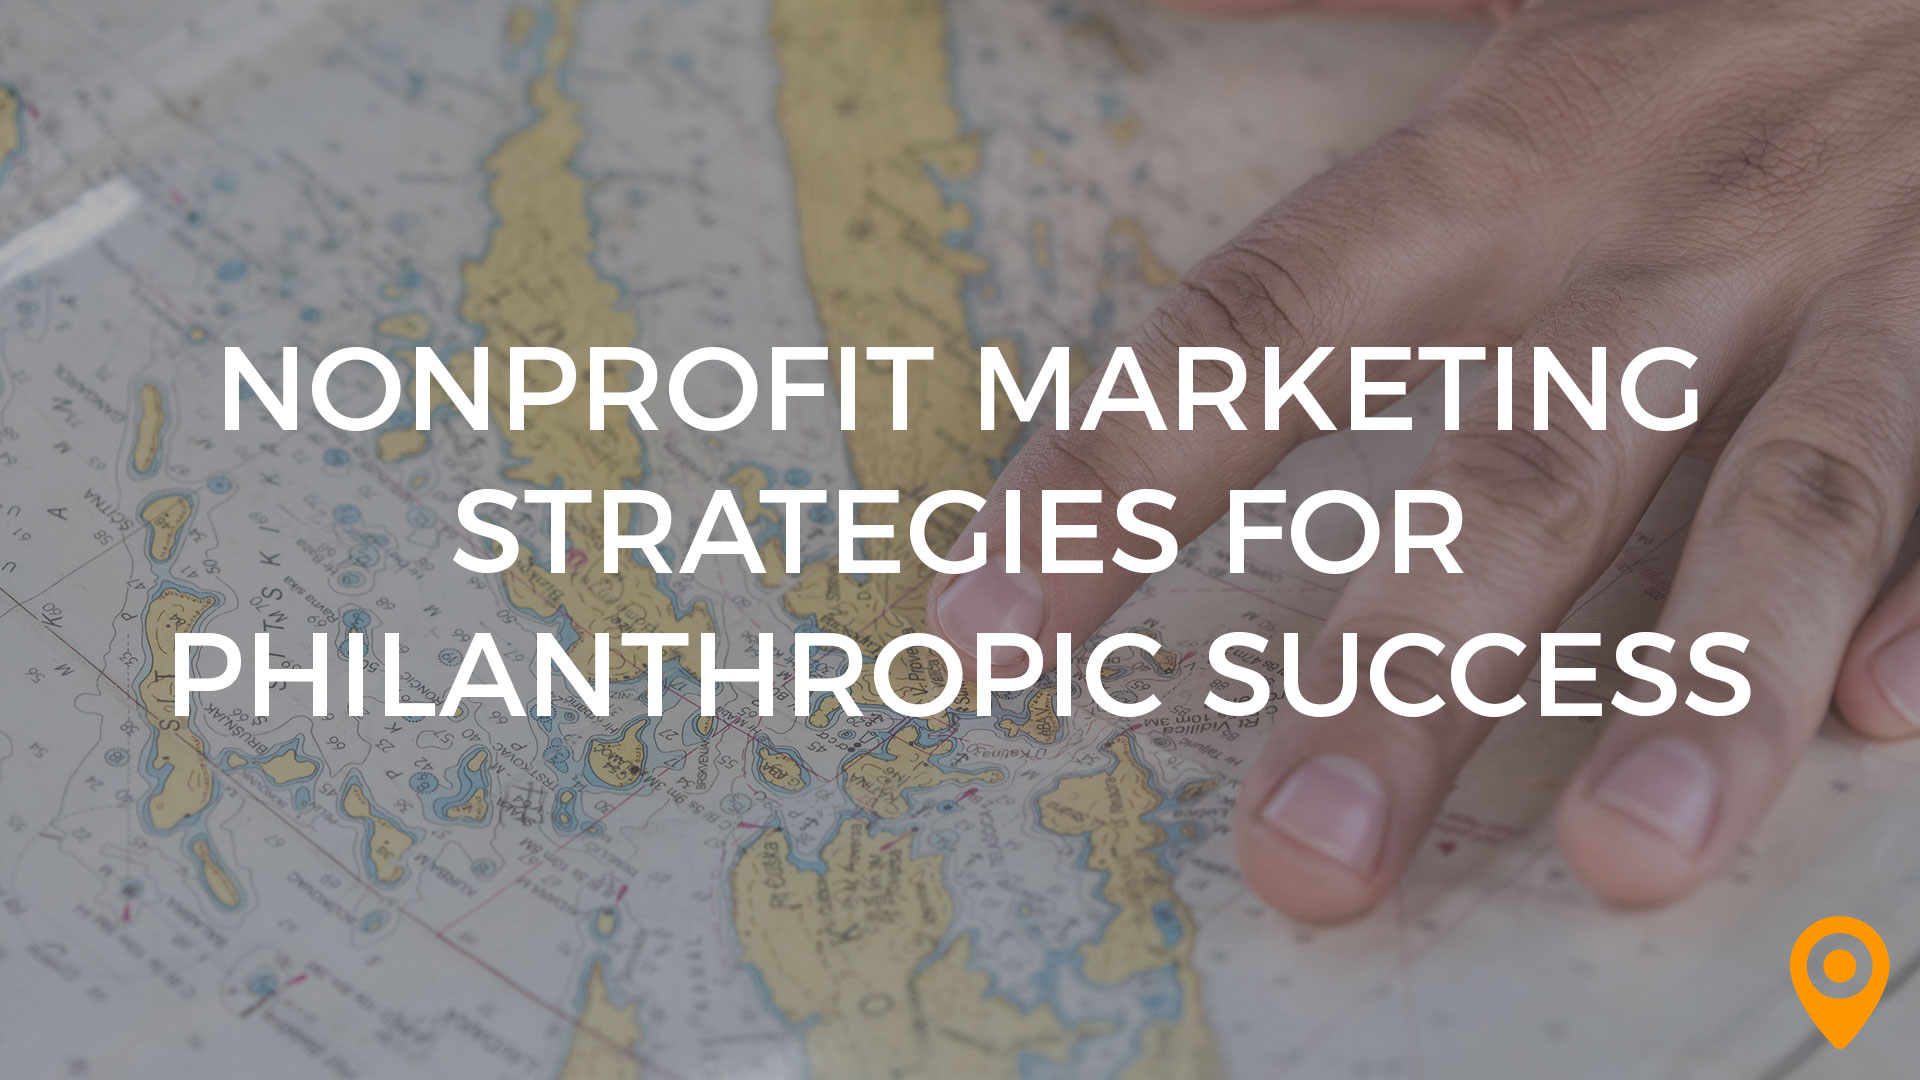 Nonprofit Marketing Strategies for Philanthropic Success